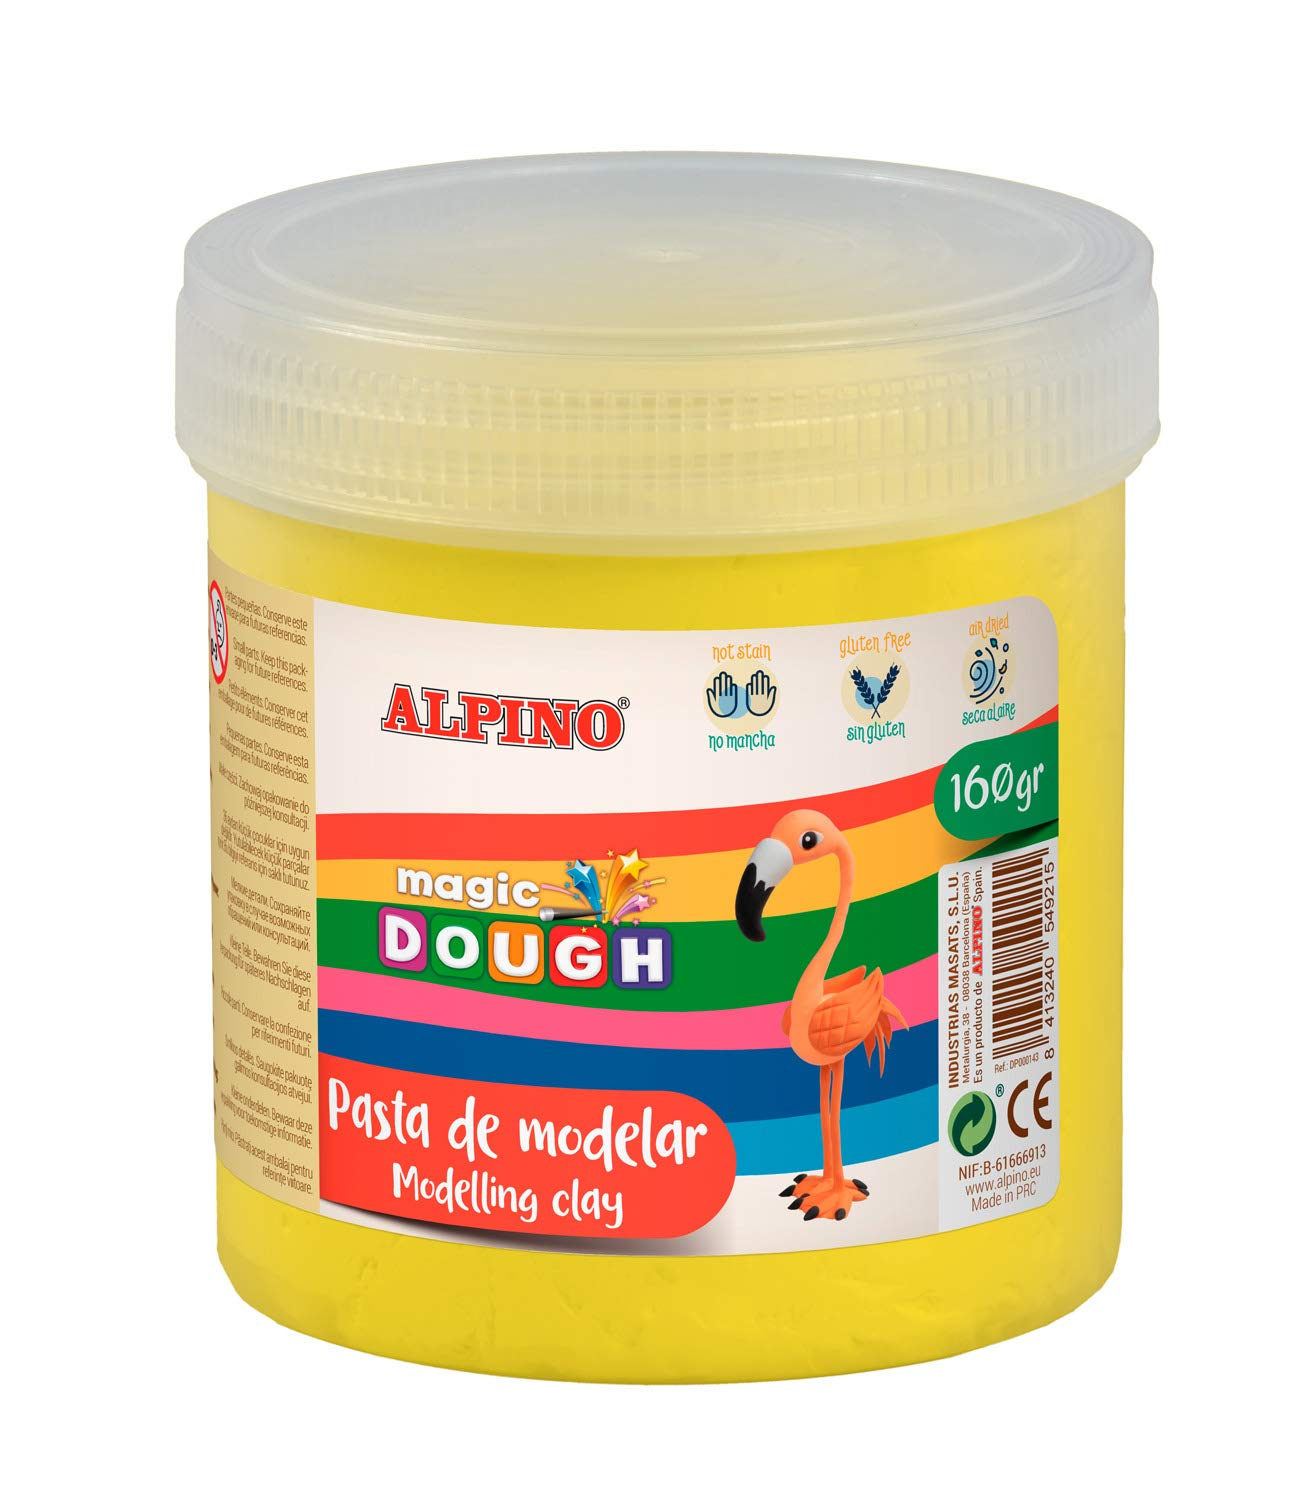 Pasta modelar ALPINO Magic Dough 160g amarillo DP000144